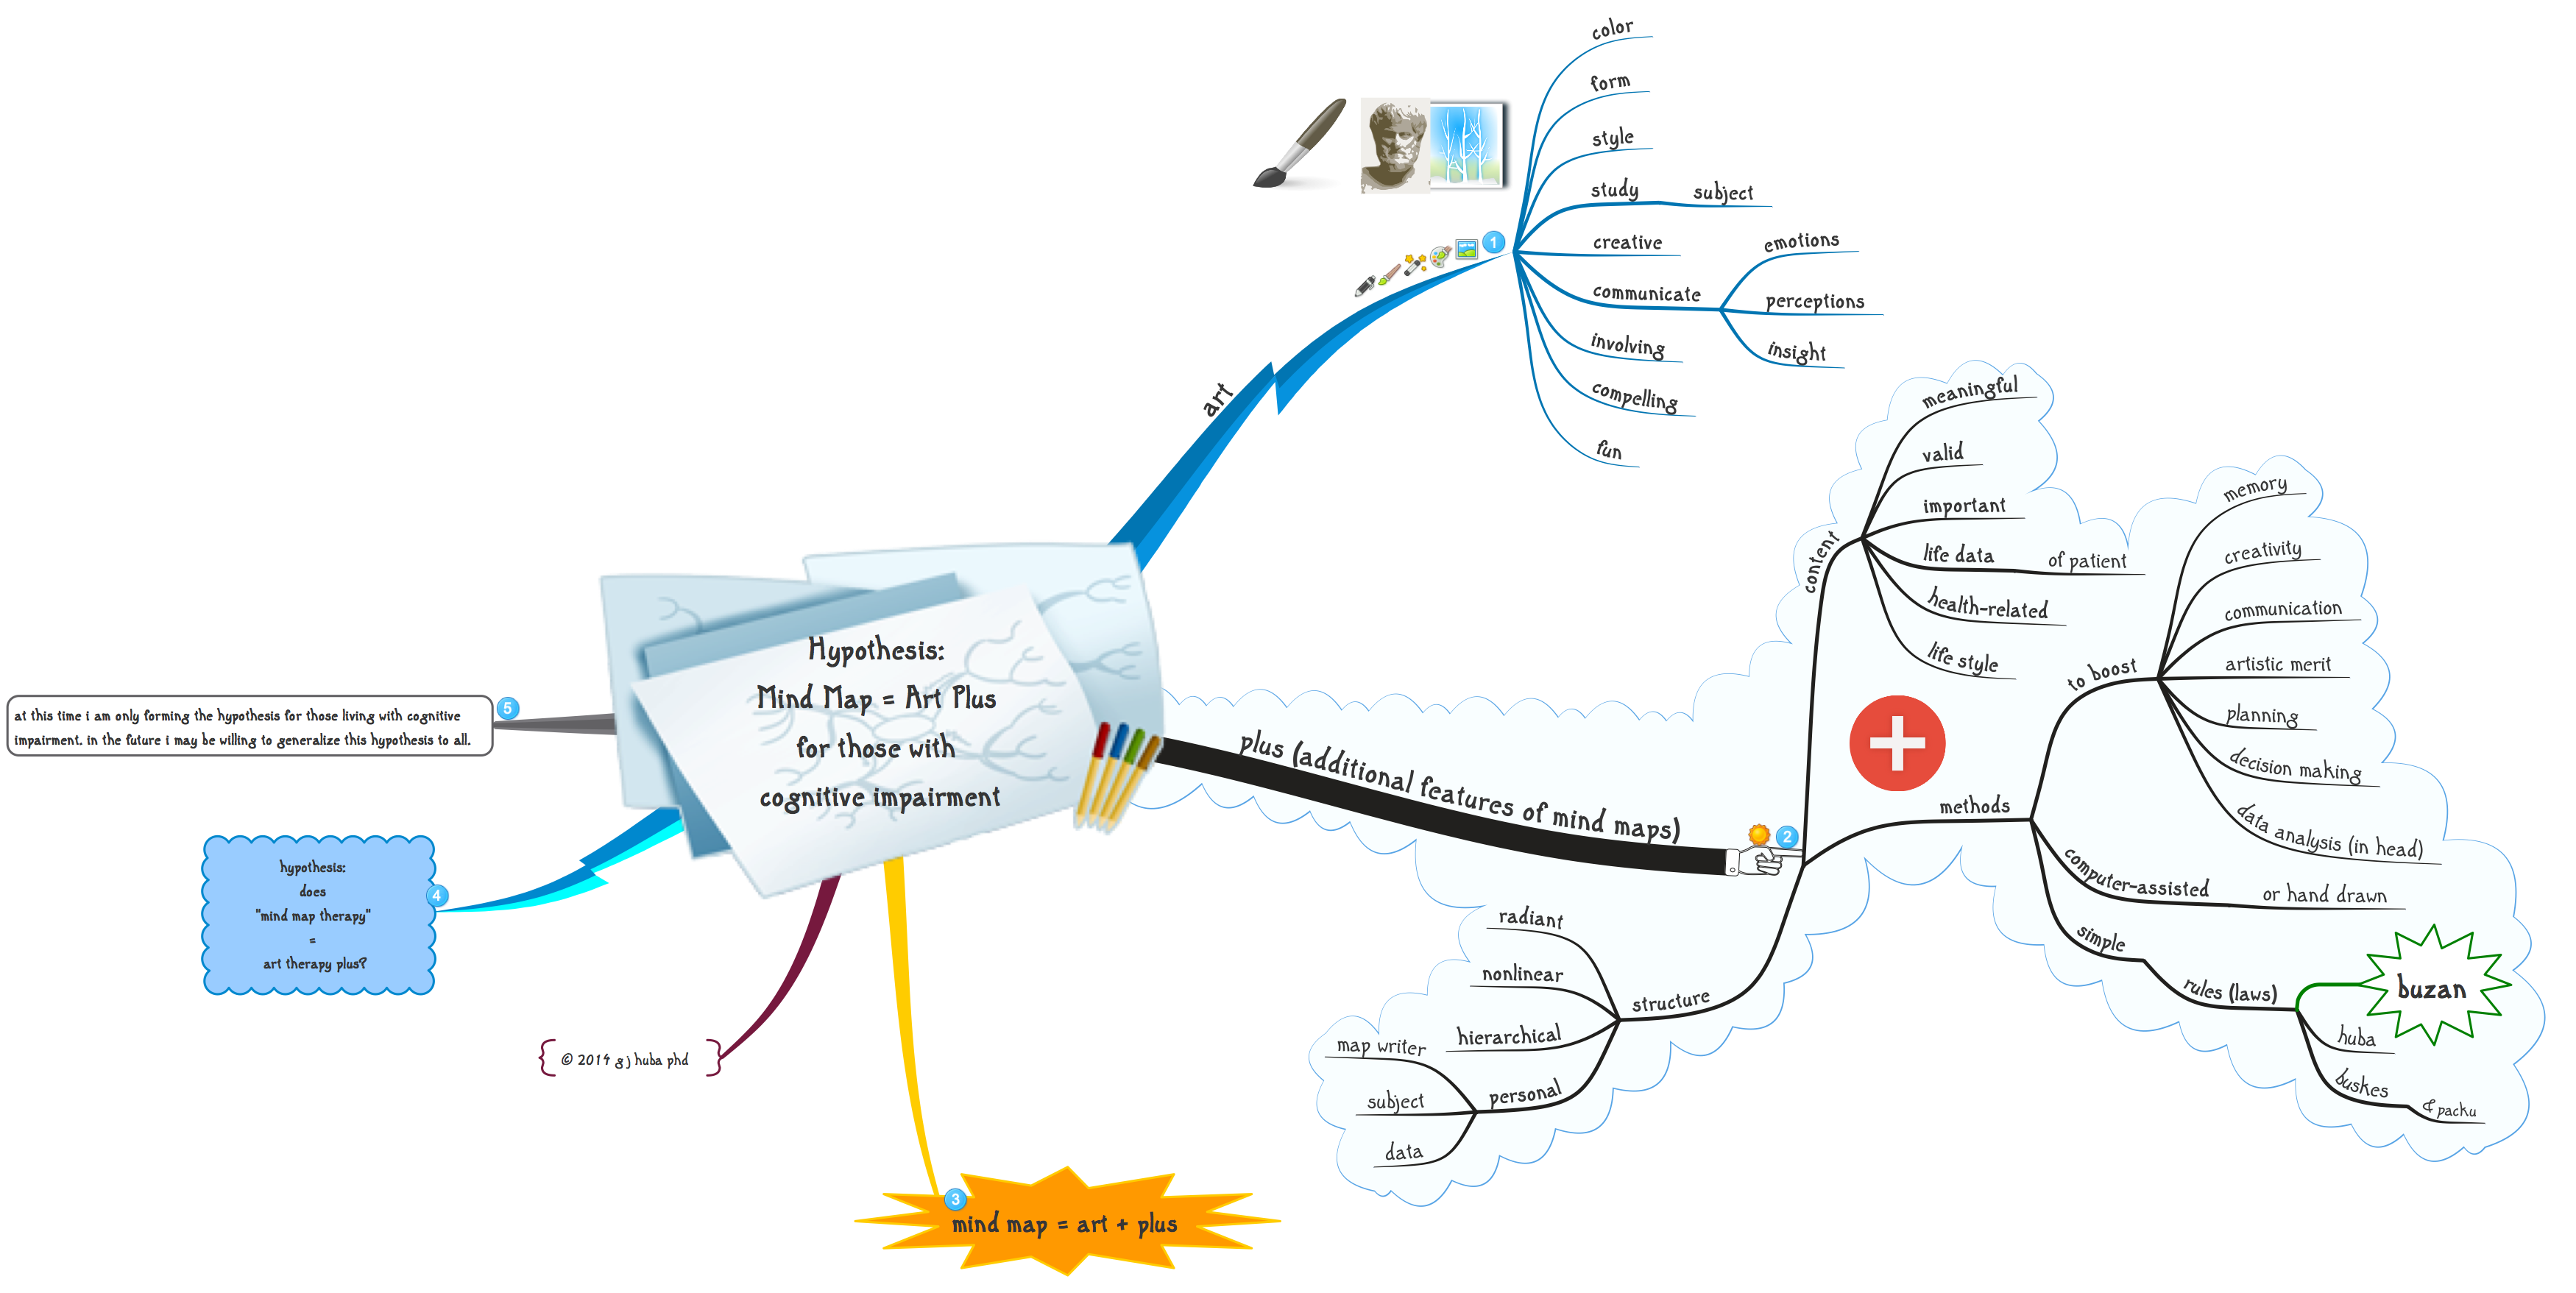 Hypothesis  Mind Map = Art Plus  for those with  cognitive impairment